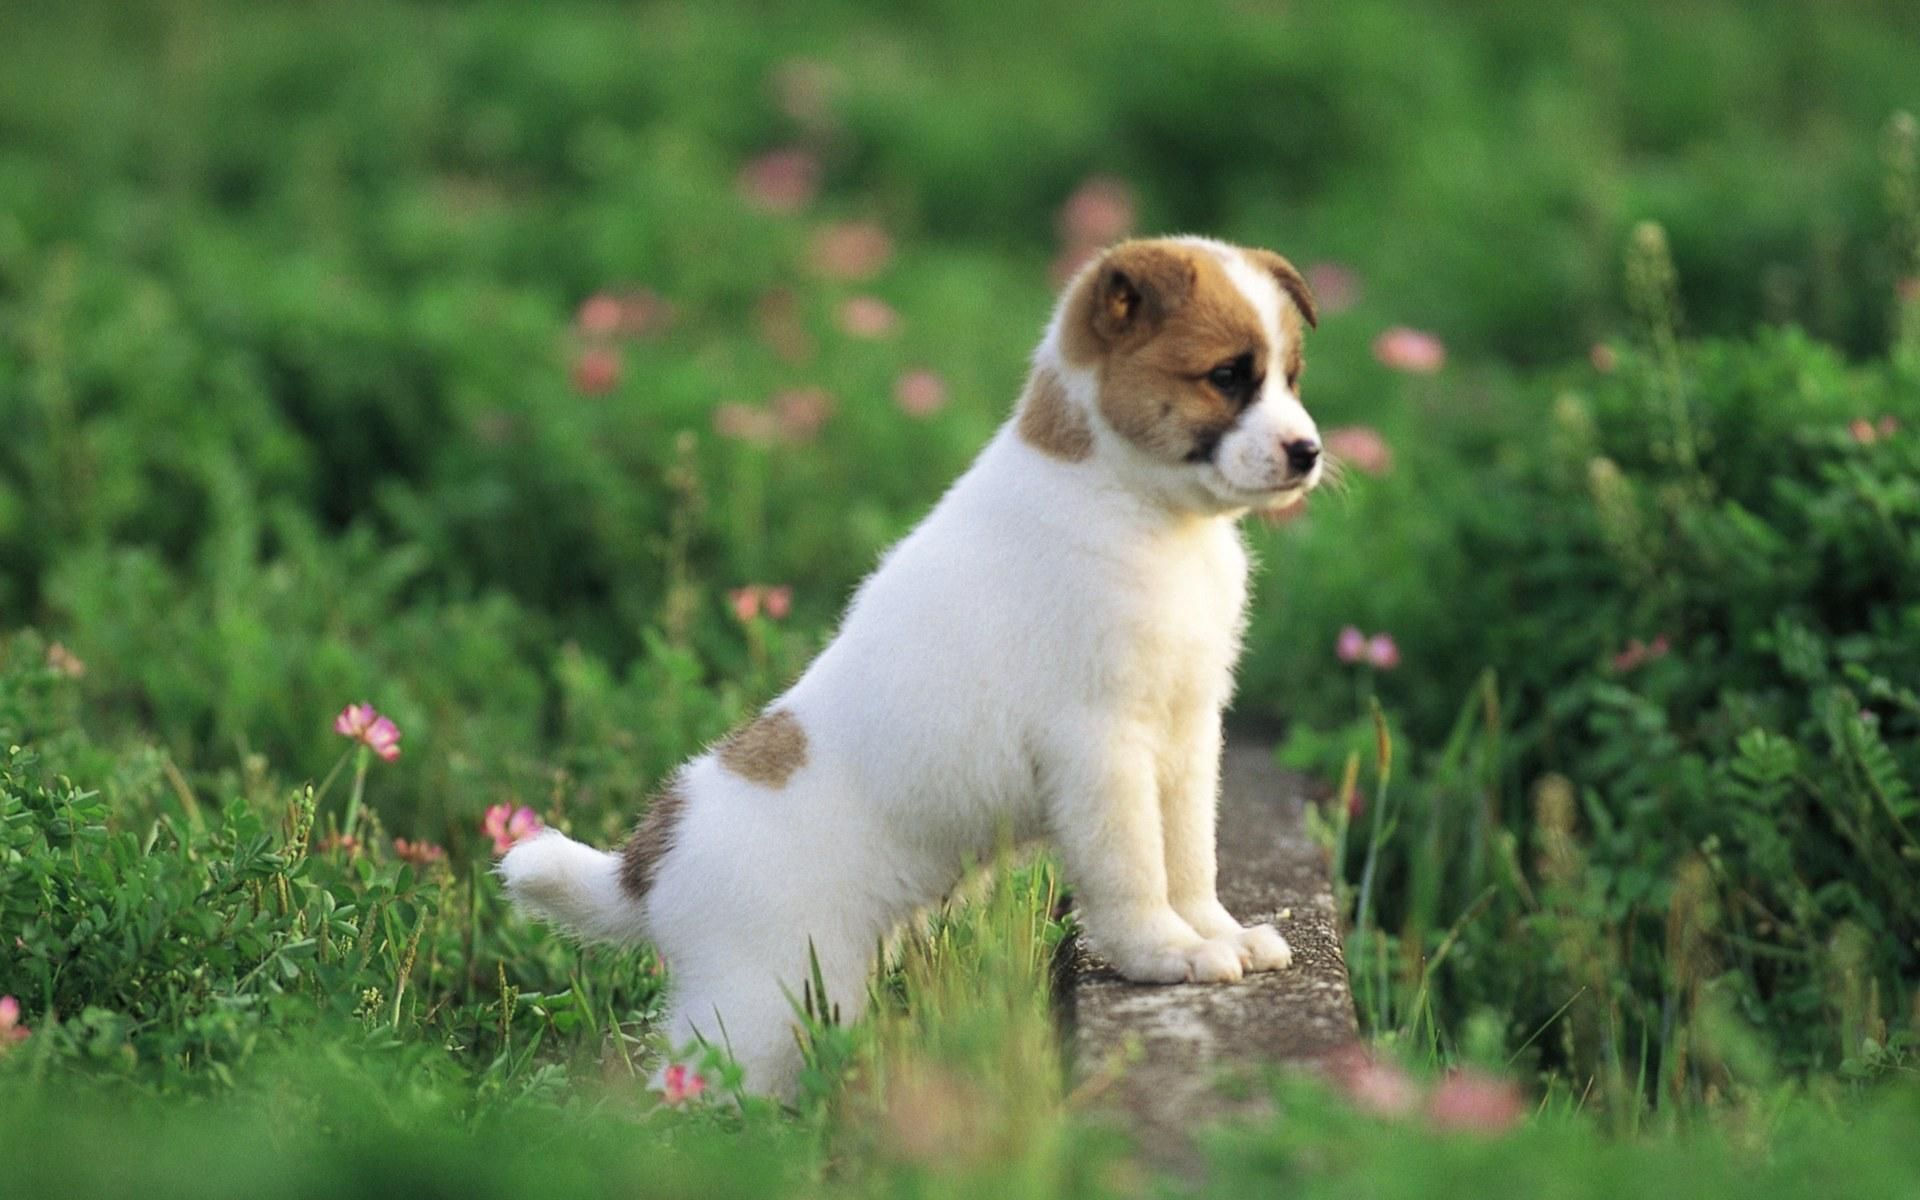 Cute Dogs Hd Wallpapers 1080p